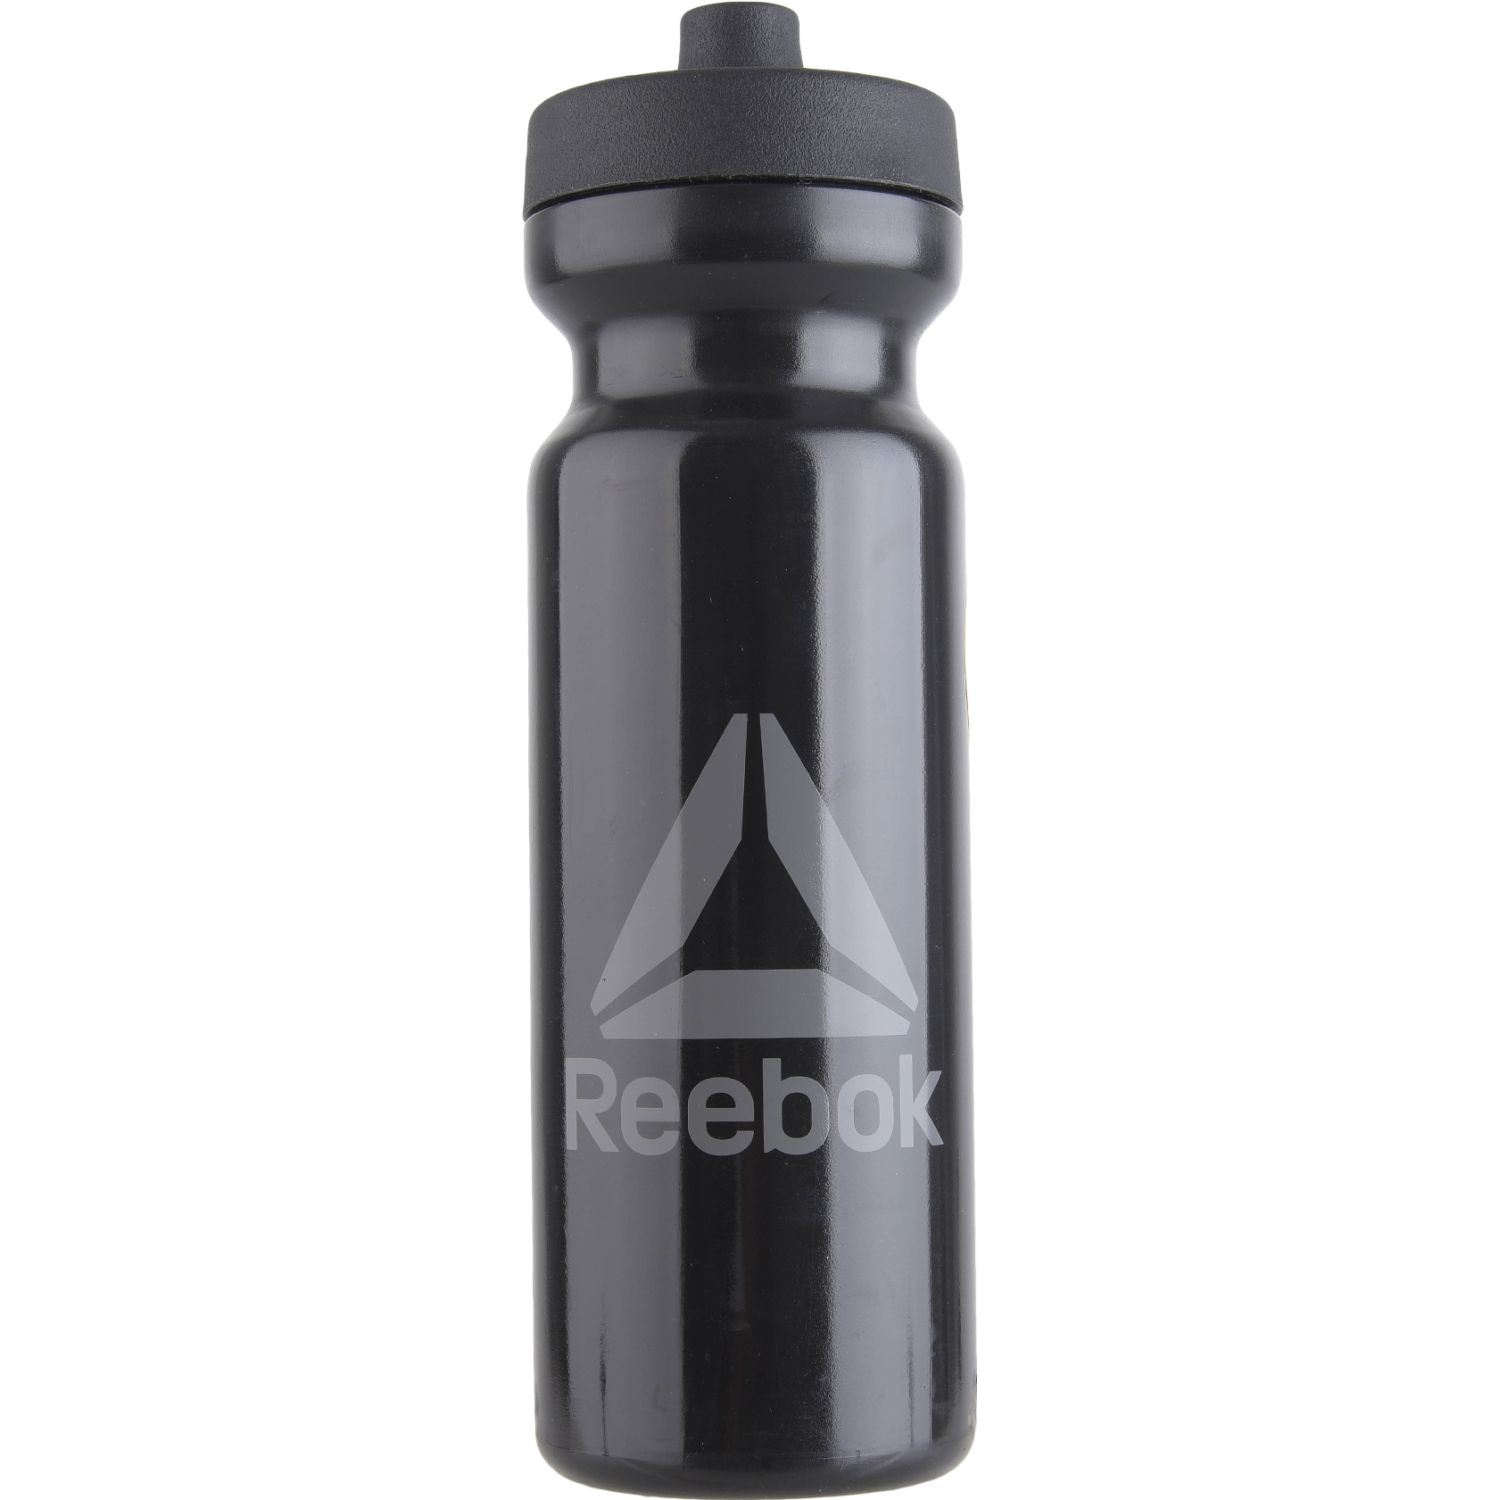 Reebok found bottle 750 Negro / blanco Botellas de agua